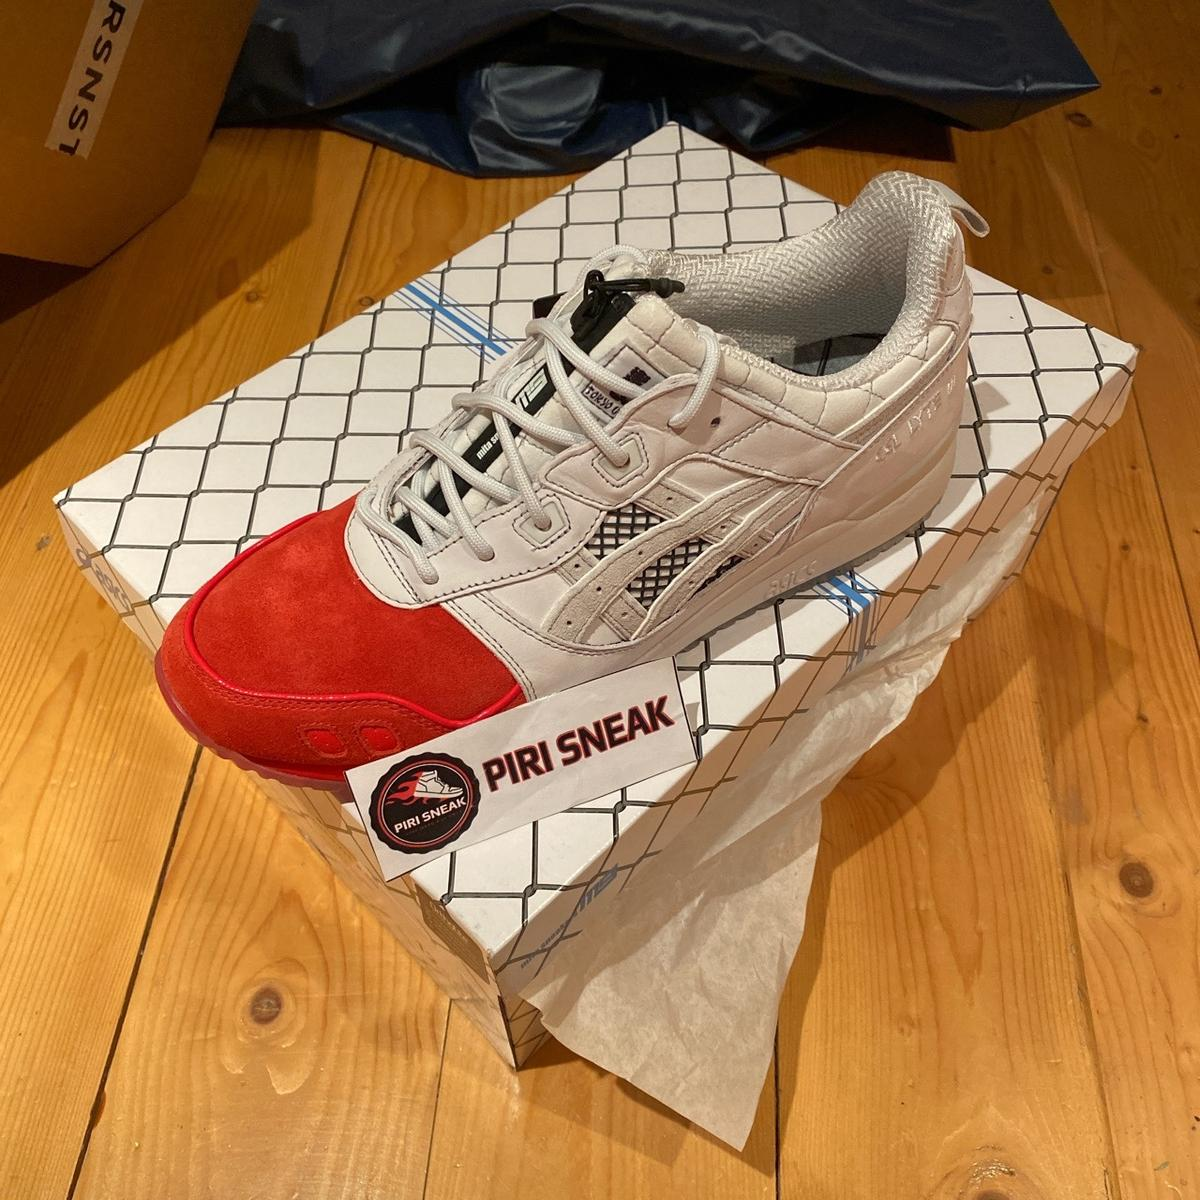 ASICS X MITA GEL-LYTE 3 OG TRICO 2020 – MITSUI X KUNII 30th Birthday - US12/UK11/EU46.5 - Deadstock - DS NEVER WORN  LOOKING FOR TRADE WITH US11 / UK10 - MEET IN LONDON